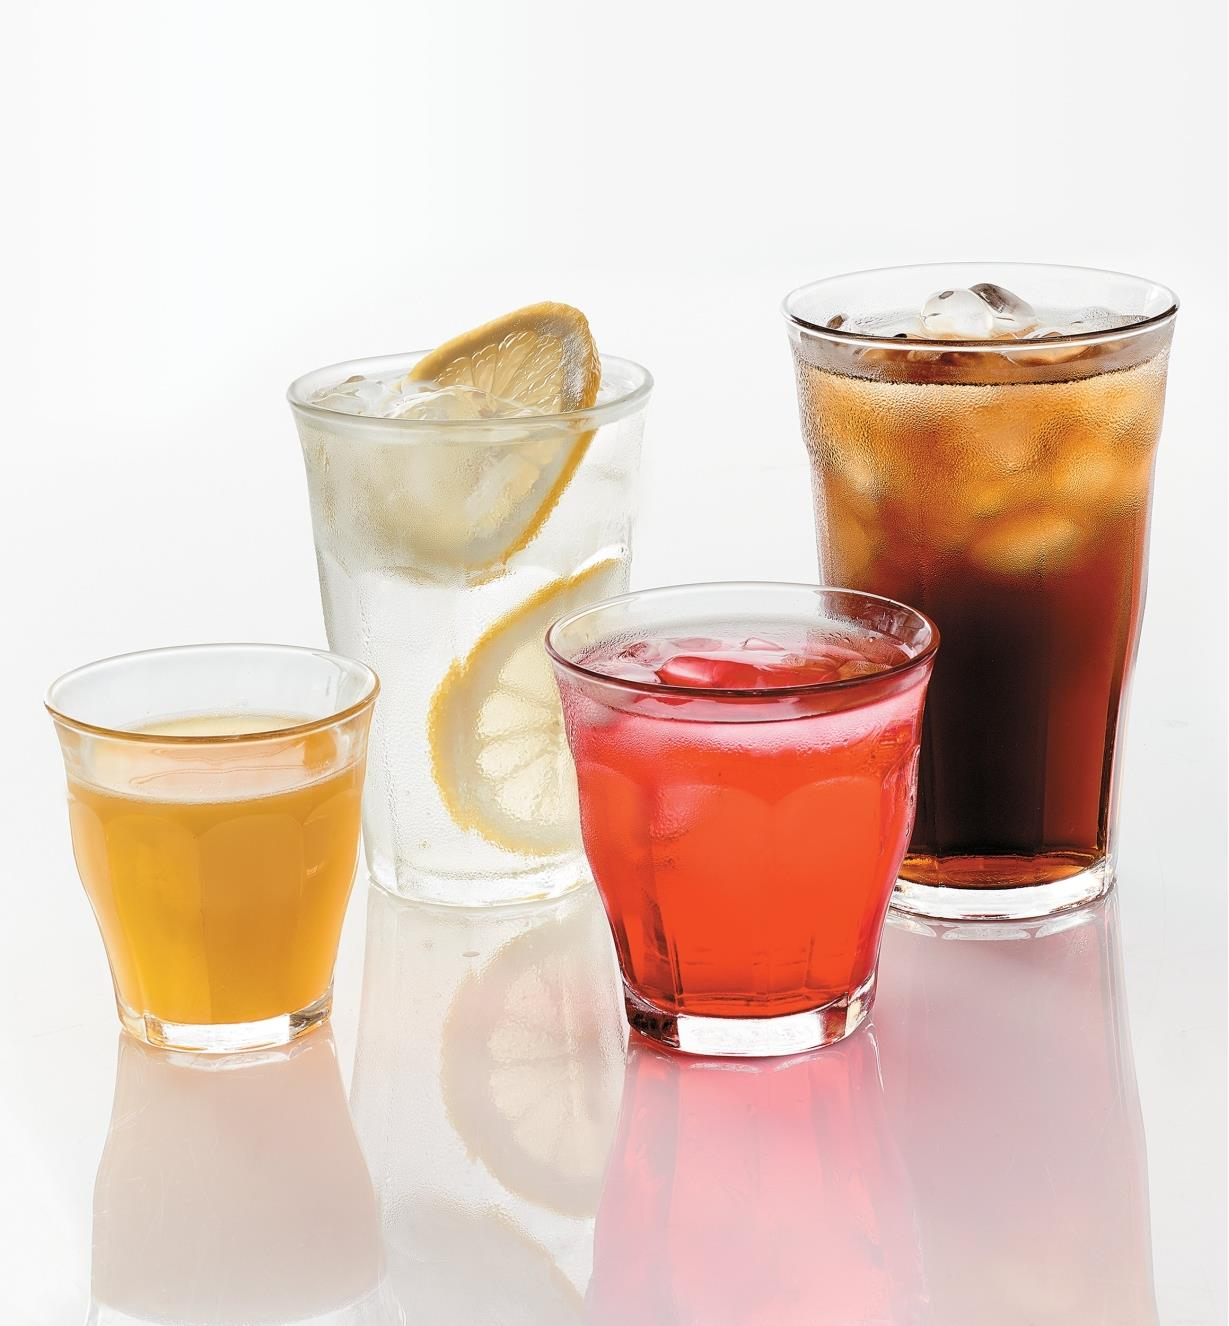 One of each size of Duralex Picardie Glasses filled with different beverages